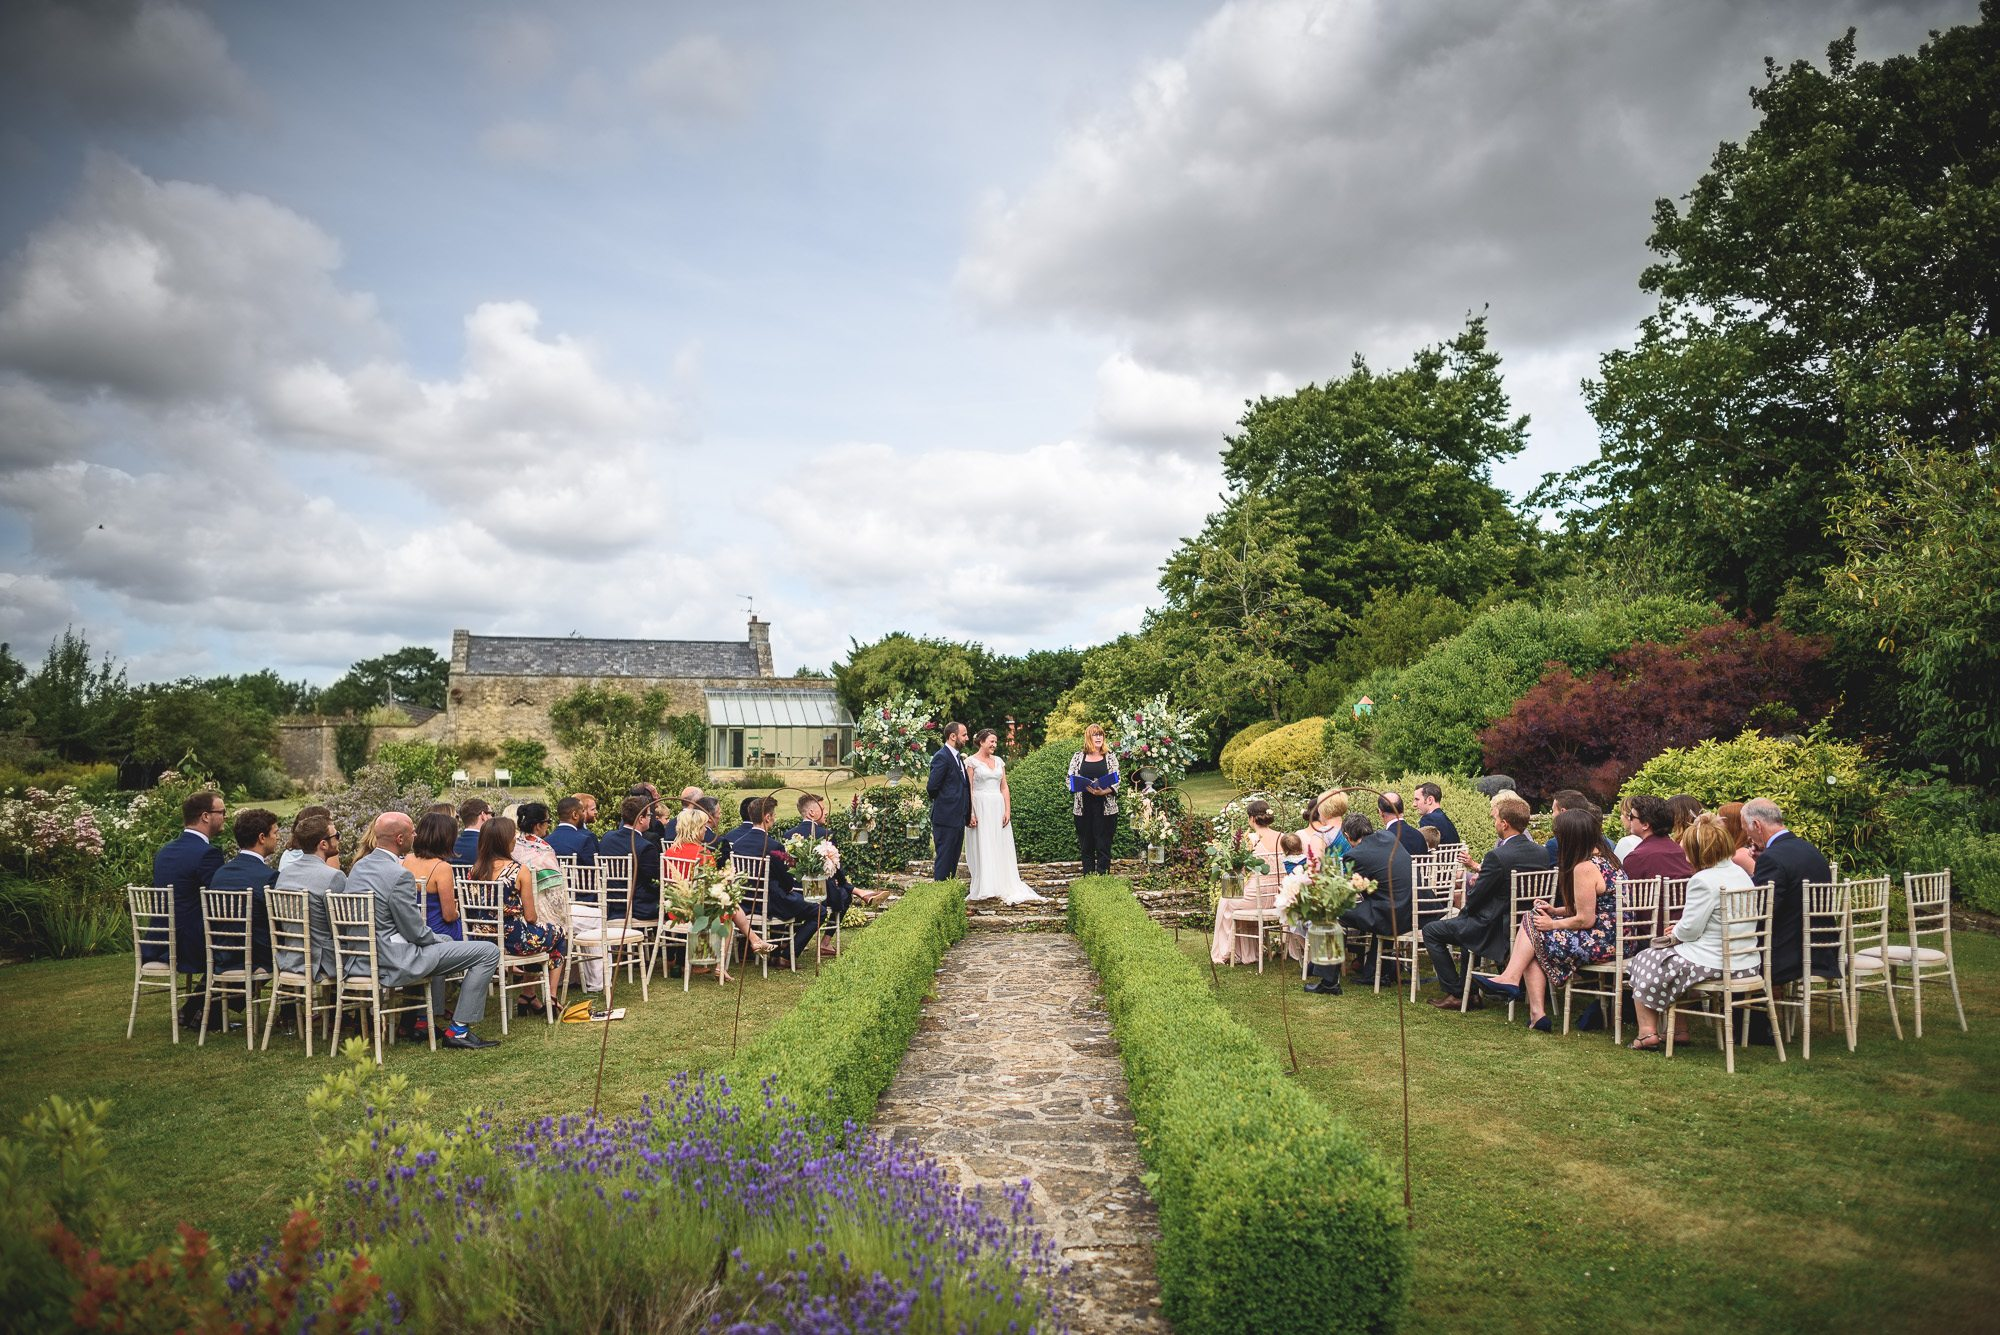 Jem and Andy - - The Rectory at Crudwell wedding photography (81 of 195)